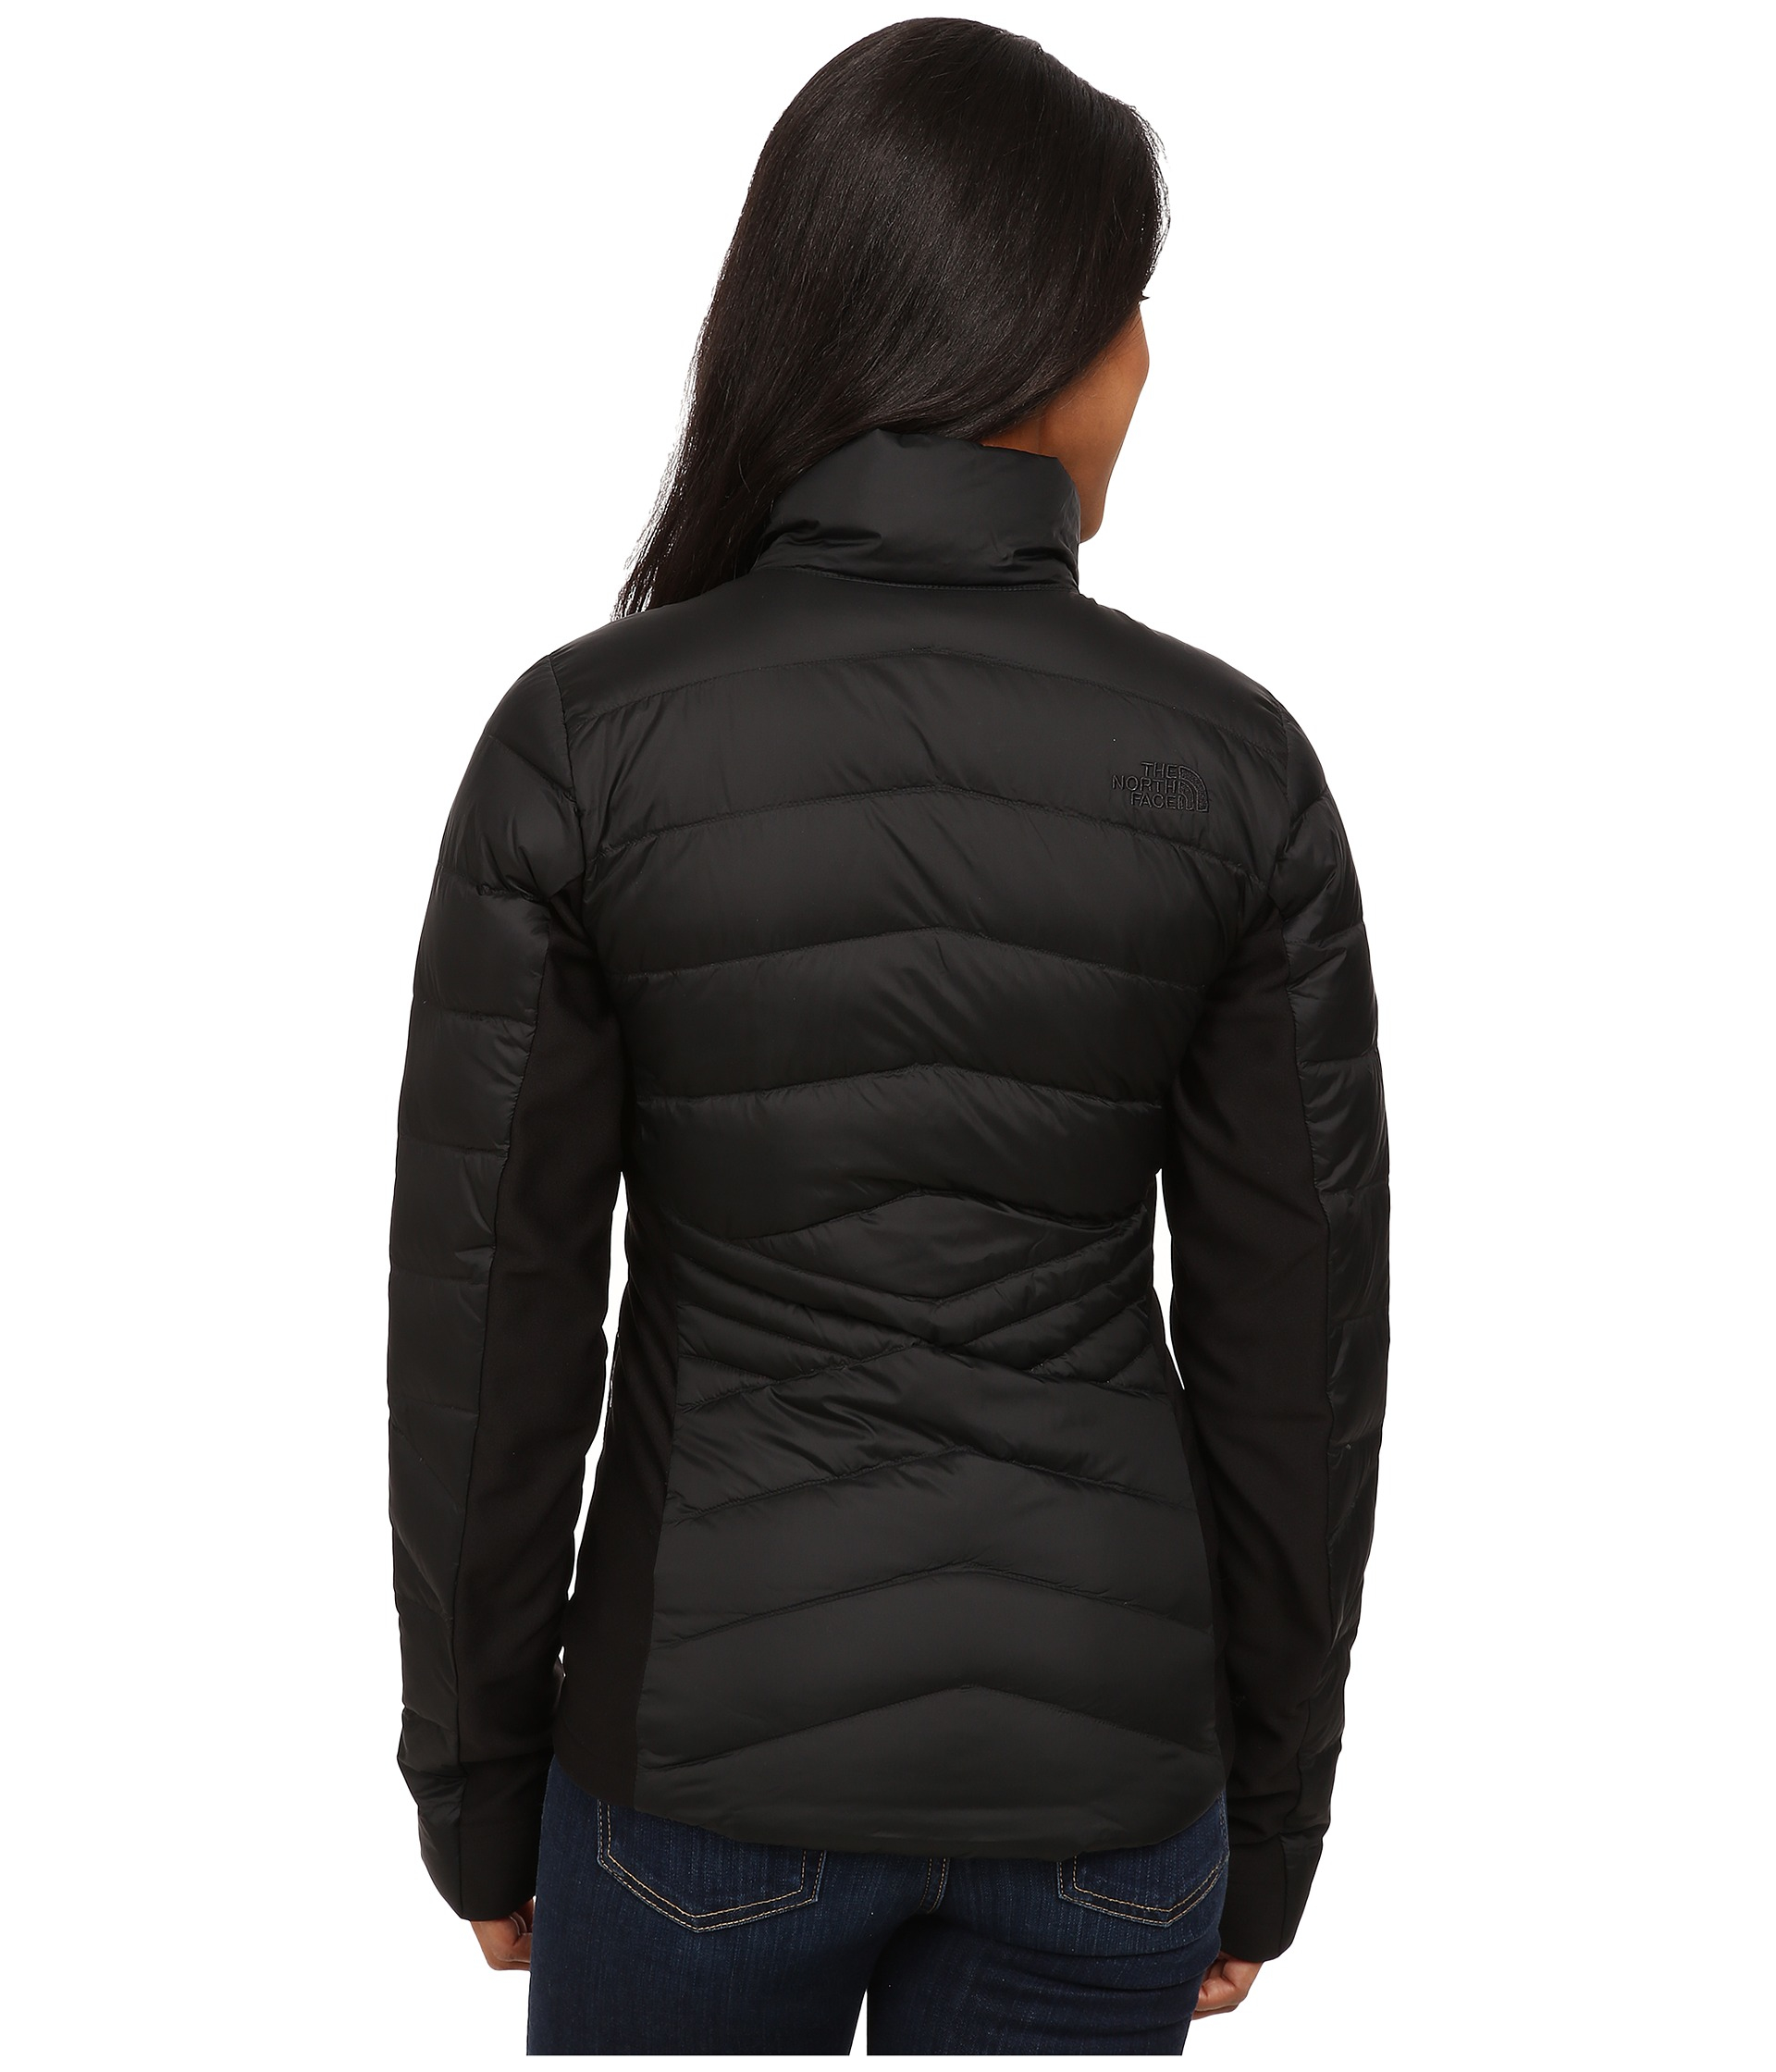 94b5c4973882 Lyst - The North Face Lucia Hybrid Down Jacket in Black